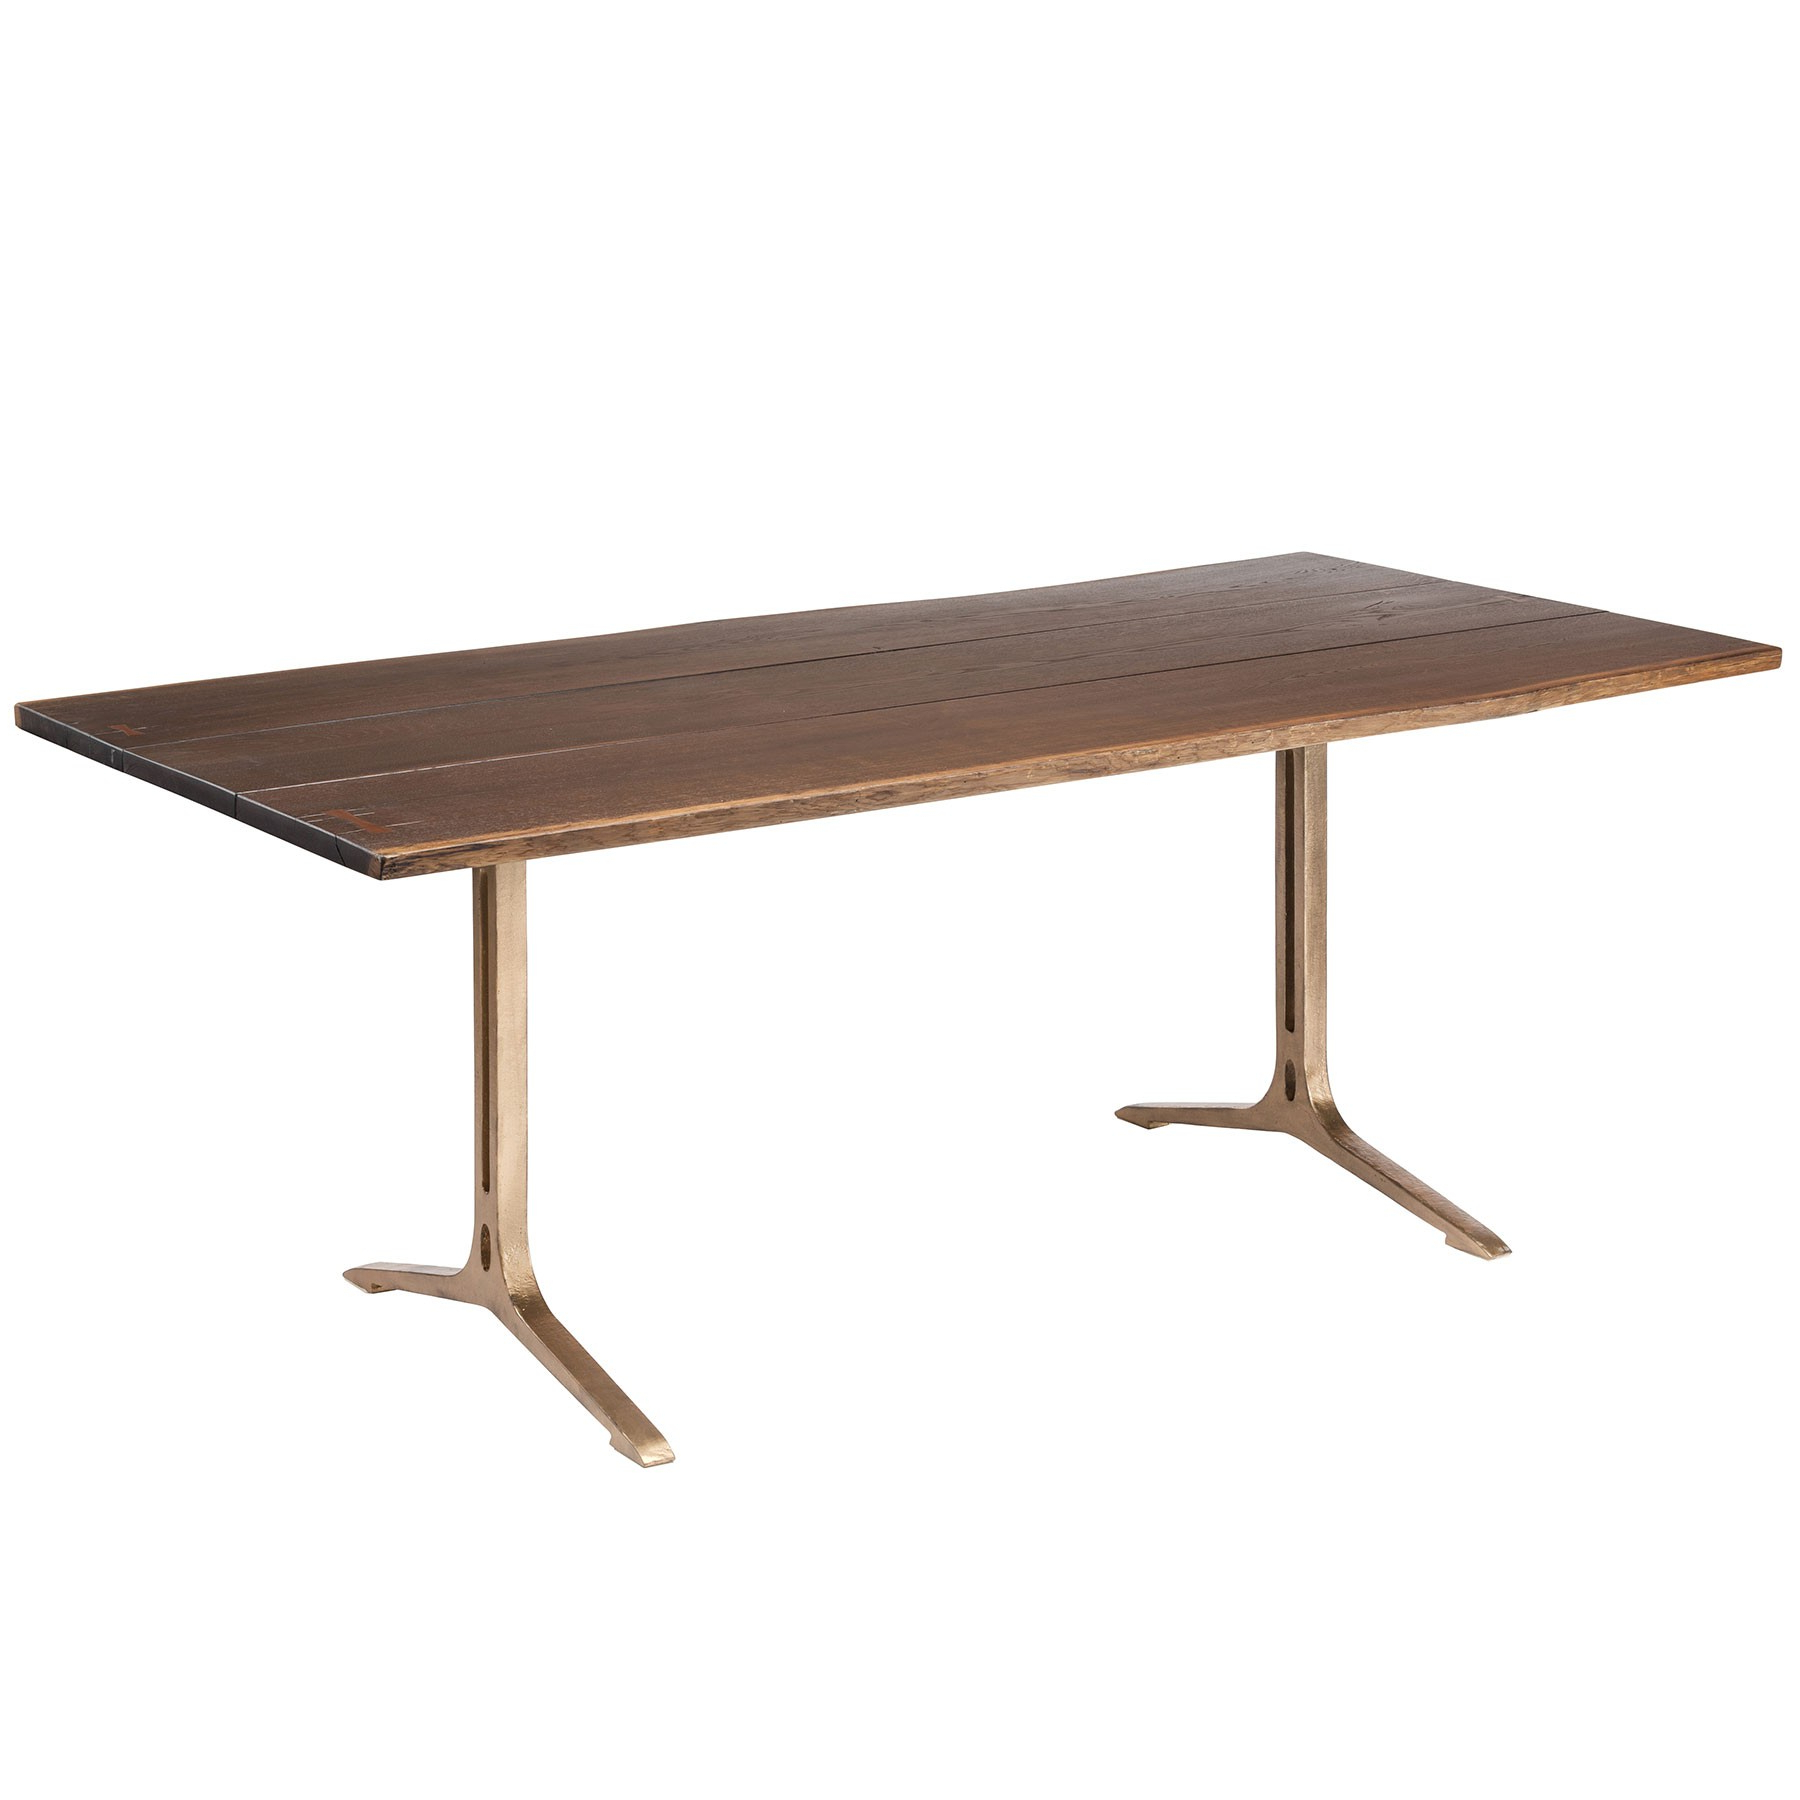 Most Recent Samara Dining Table – Seared Oak / Bronze Regarding Dining Tables In Smoked/seared Oak (View 2 of 25)